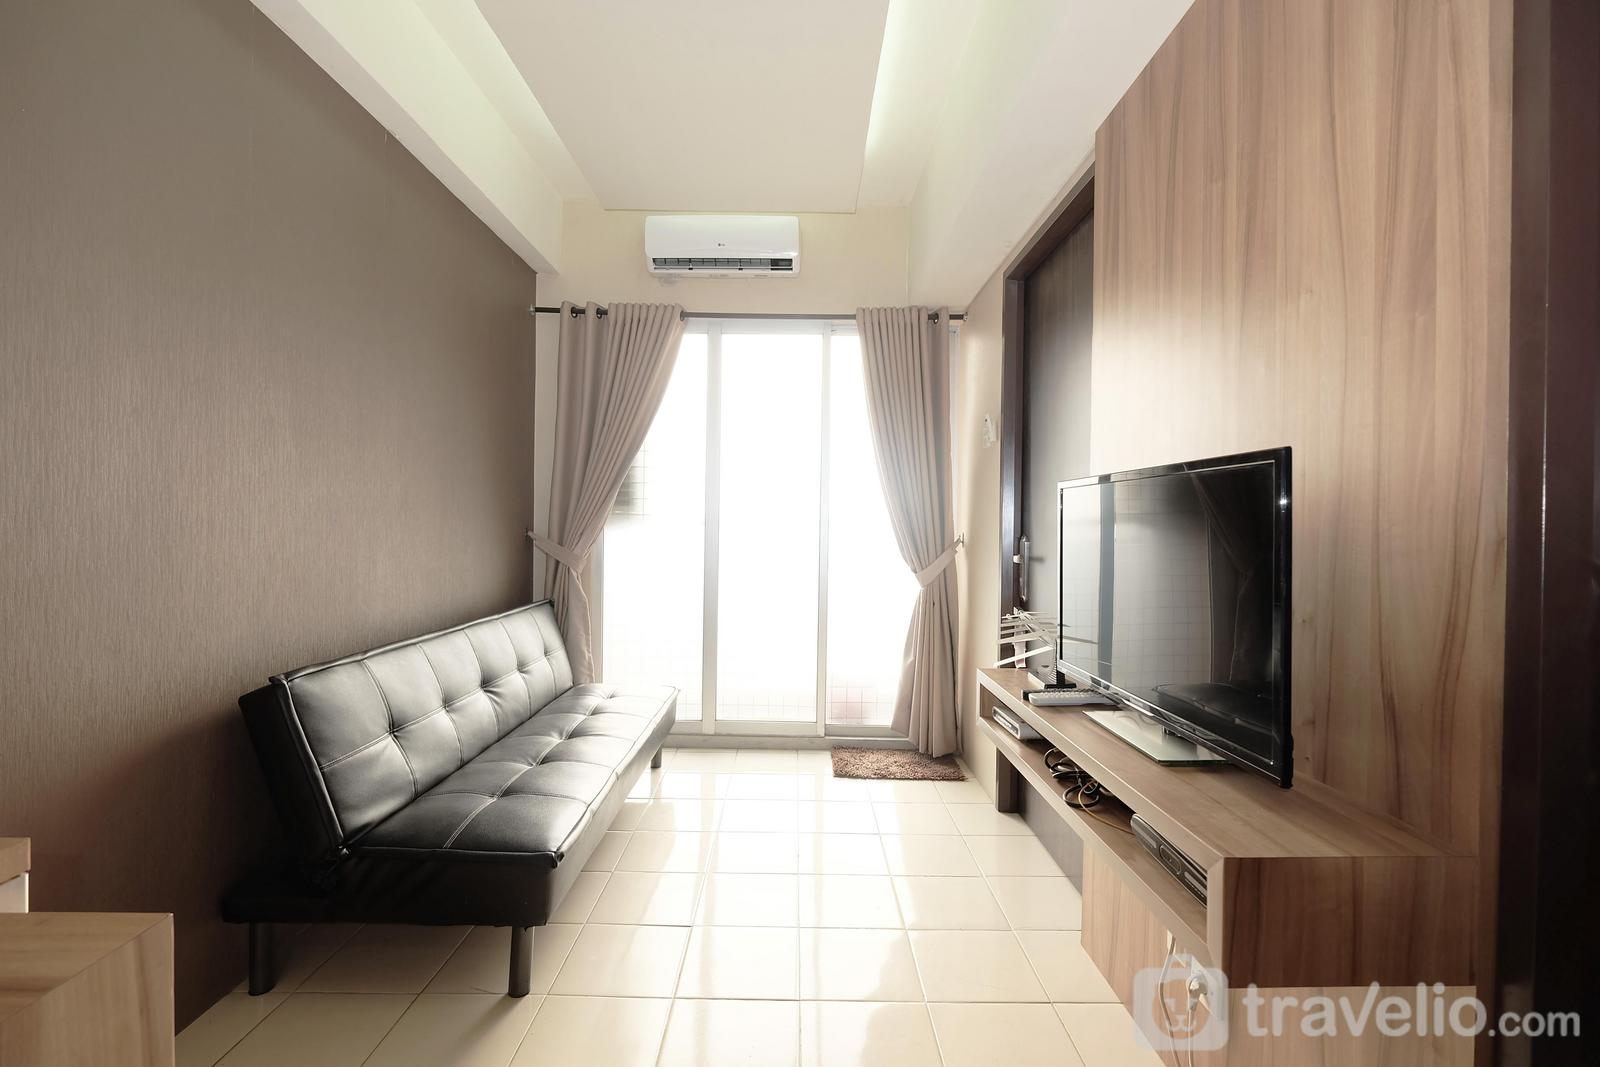 Serpong Green View - Minimalist 2BR Serpong Greenview Apartment By Travelio